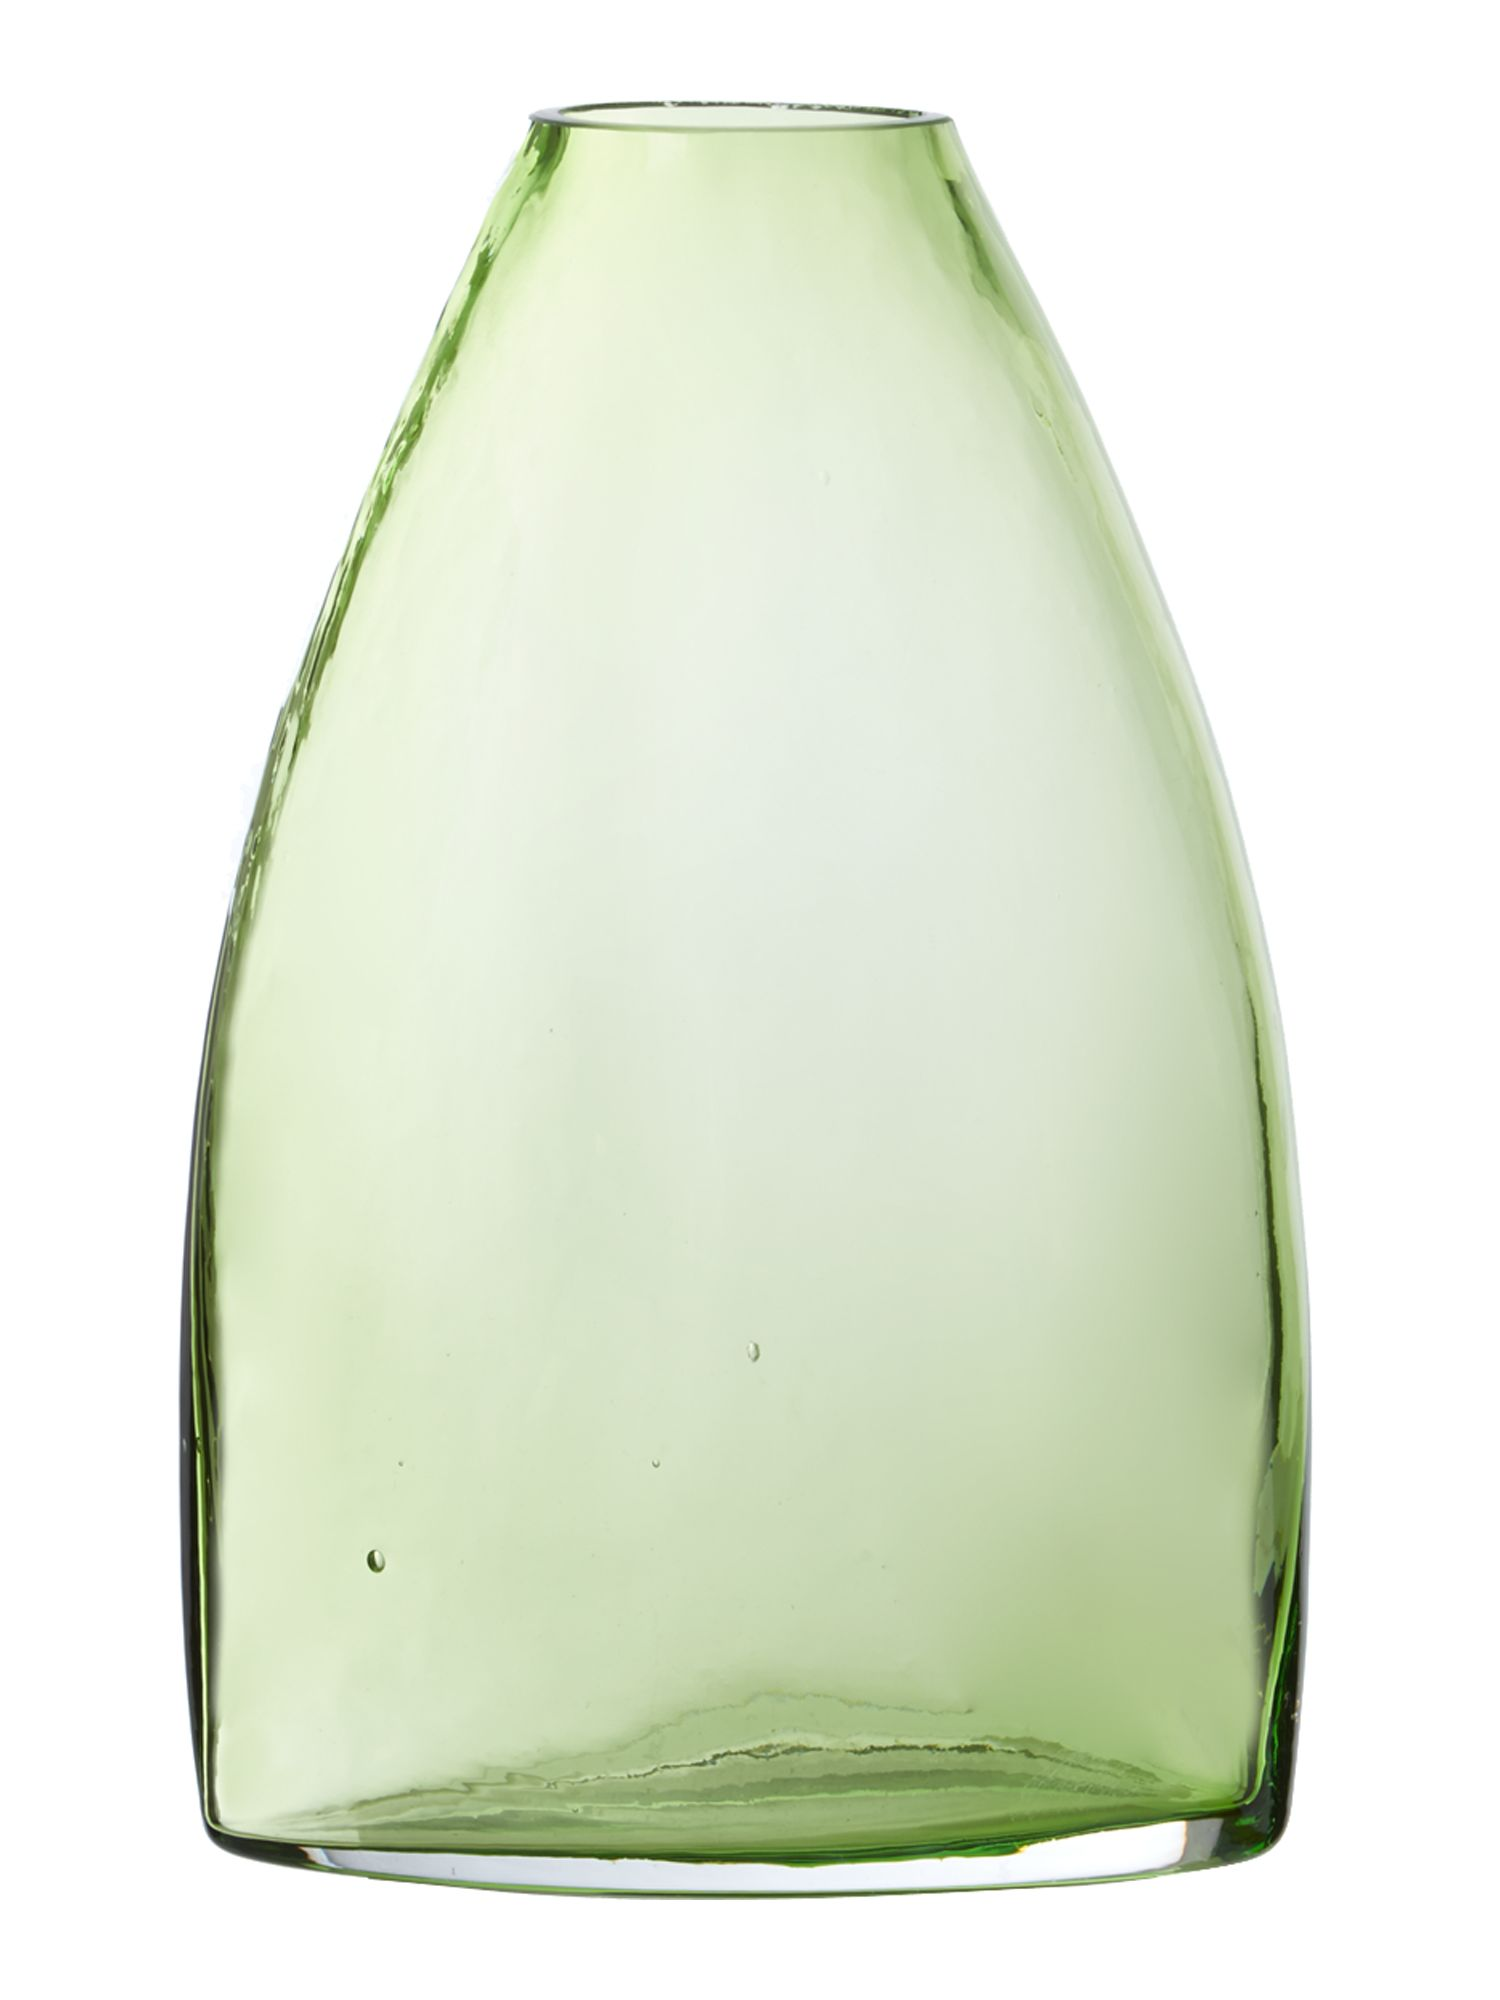 Green glass vase, medium